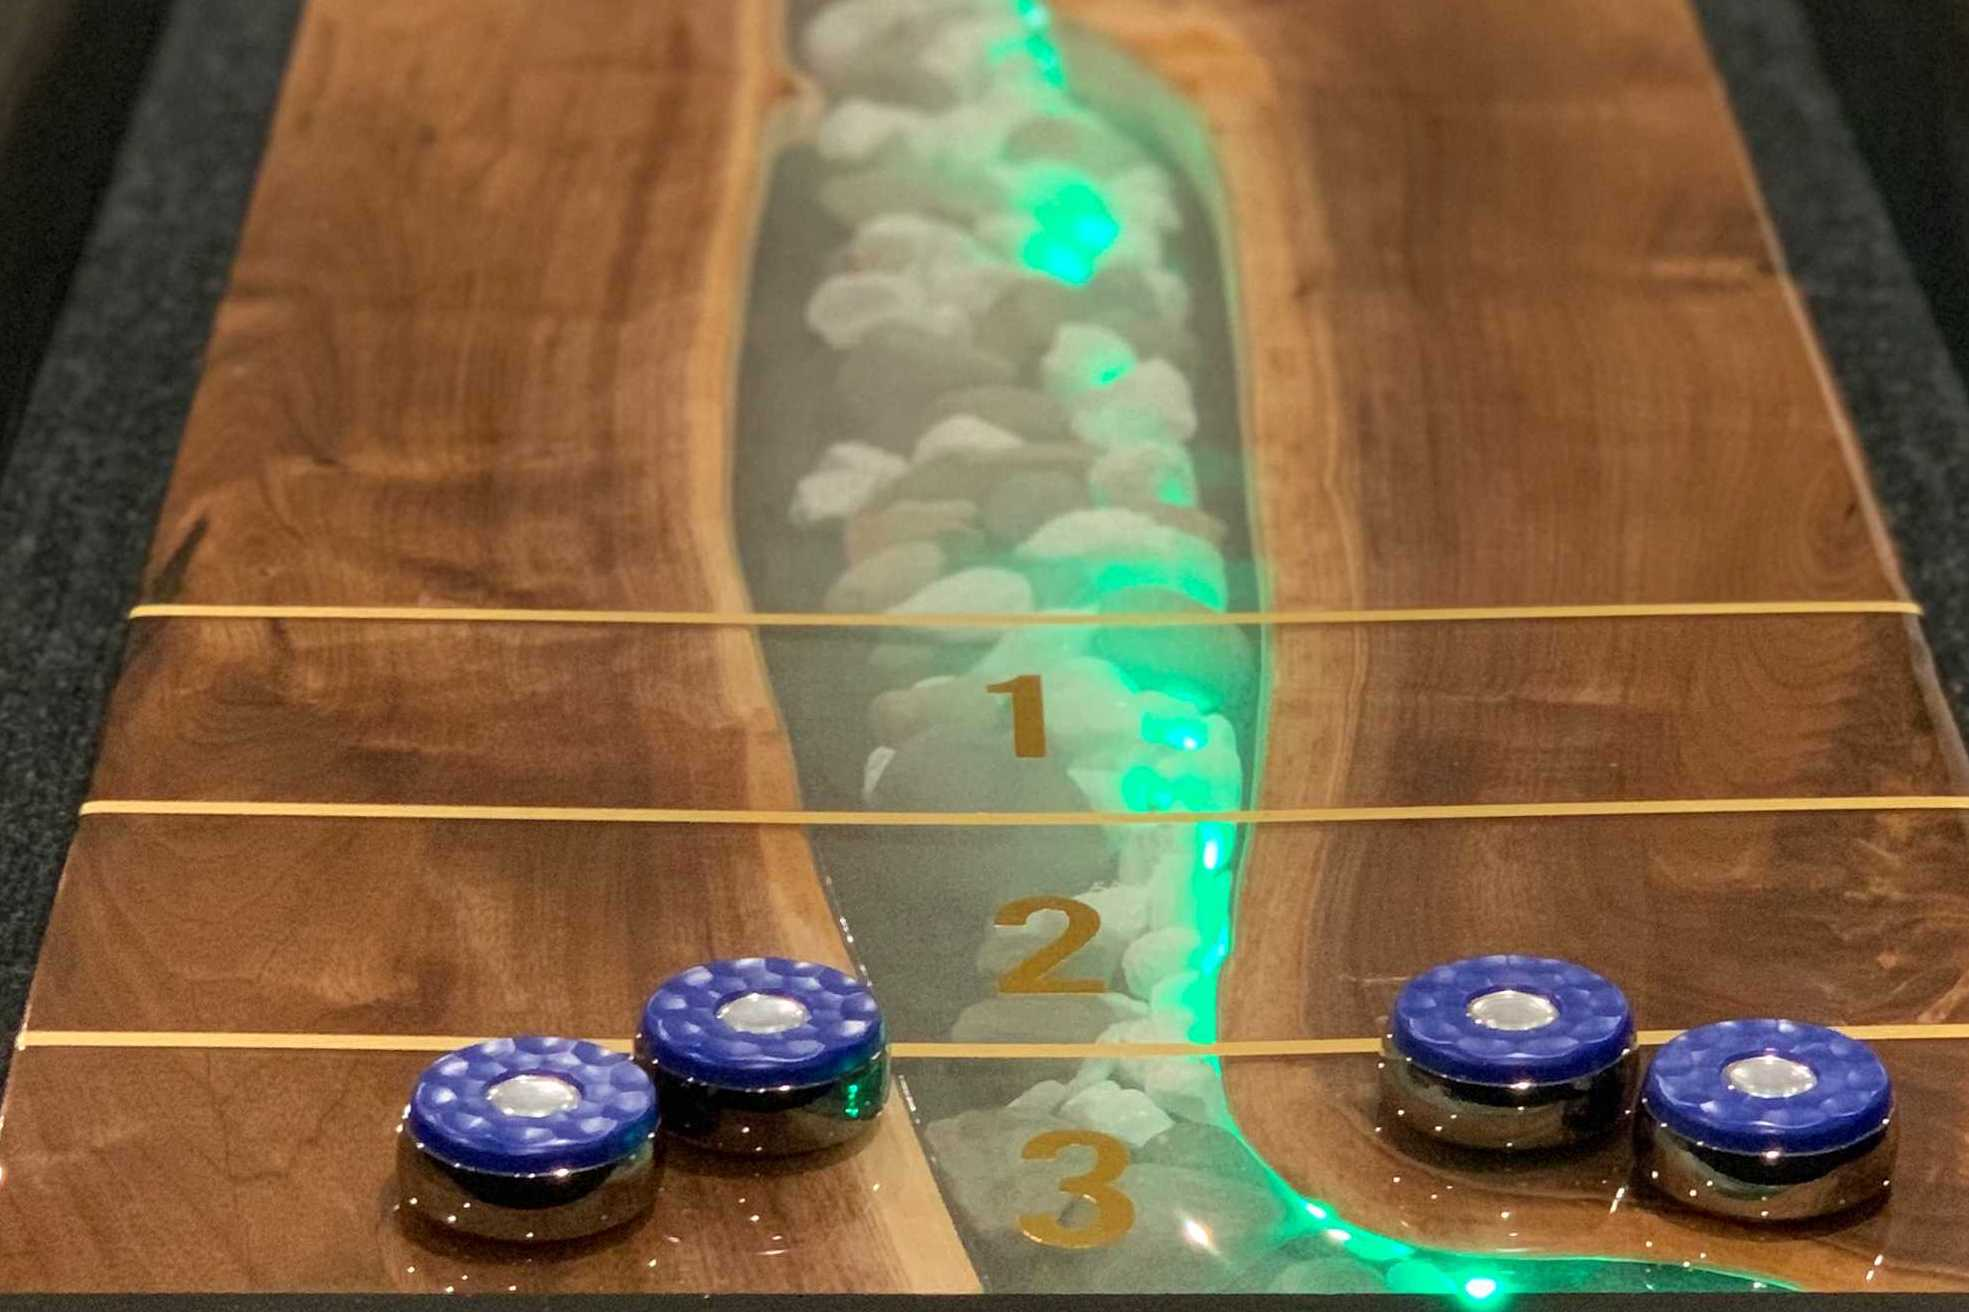 Epoxy Resin River Table - Shuffleboard Style